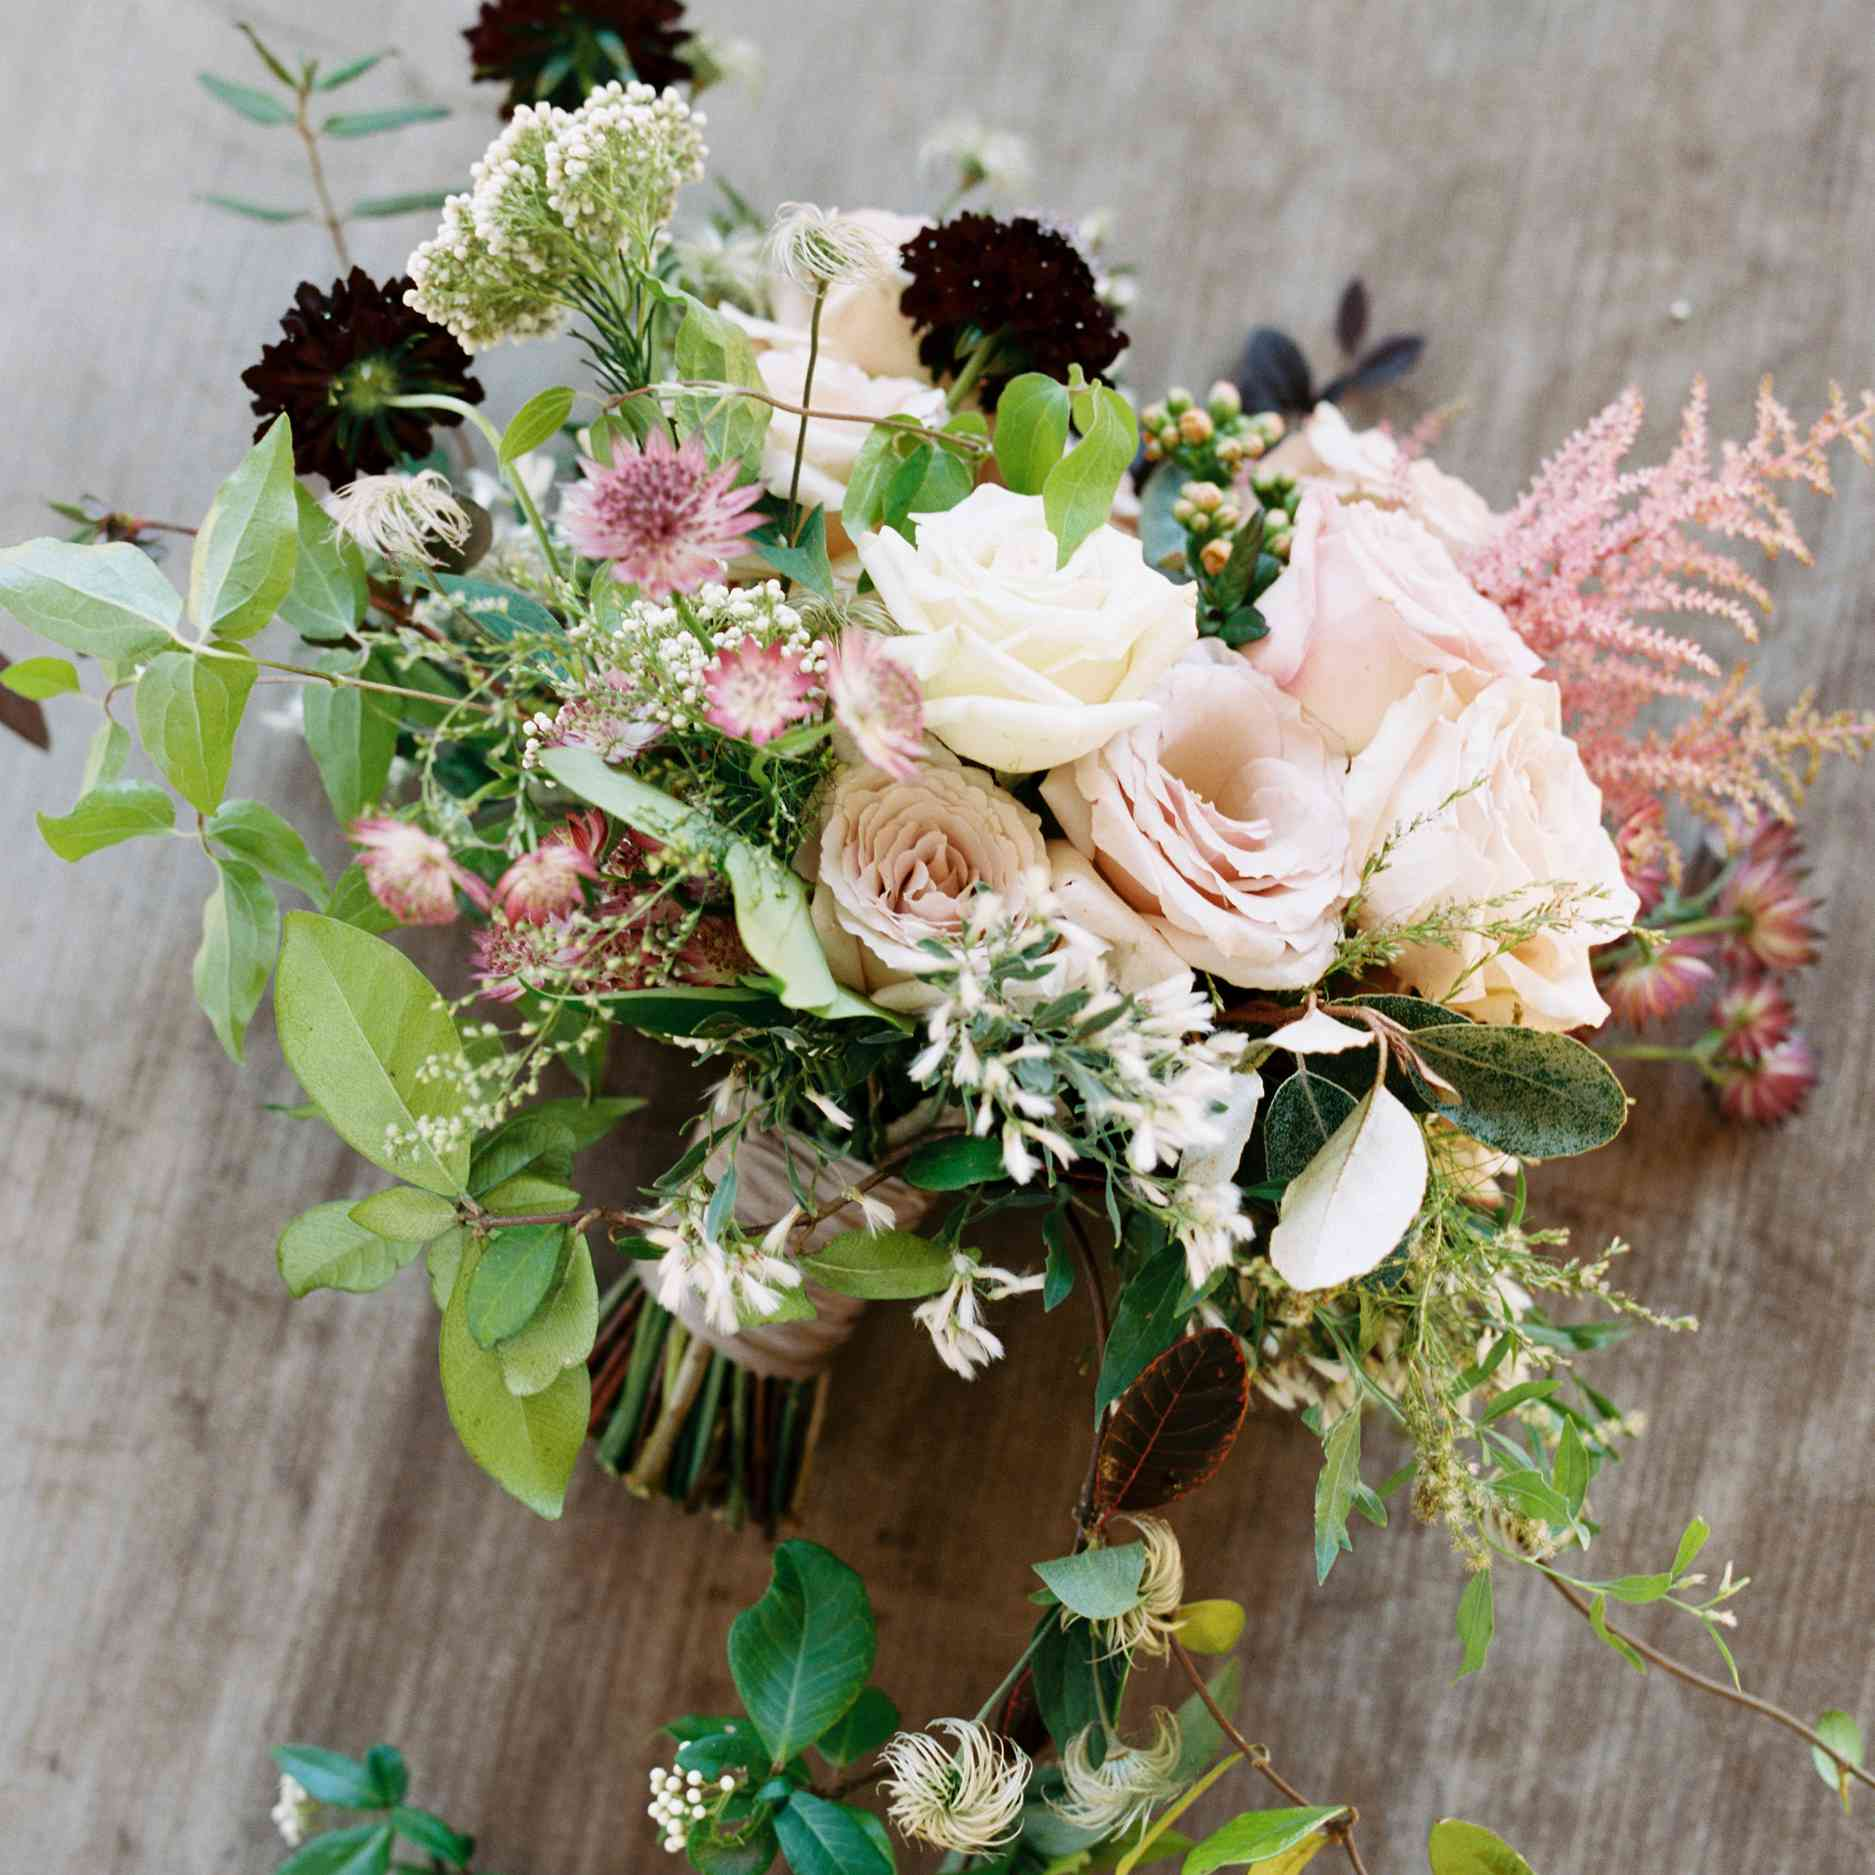 Bridal bouquet consisting of rice flower, hellebores, kalanchoe, Japanese clematis, and smokebush